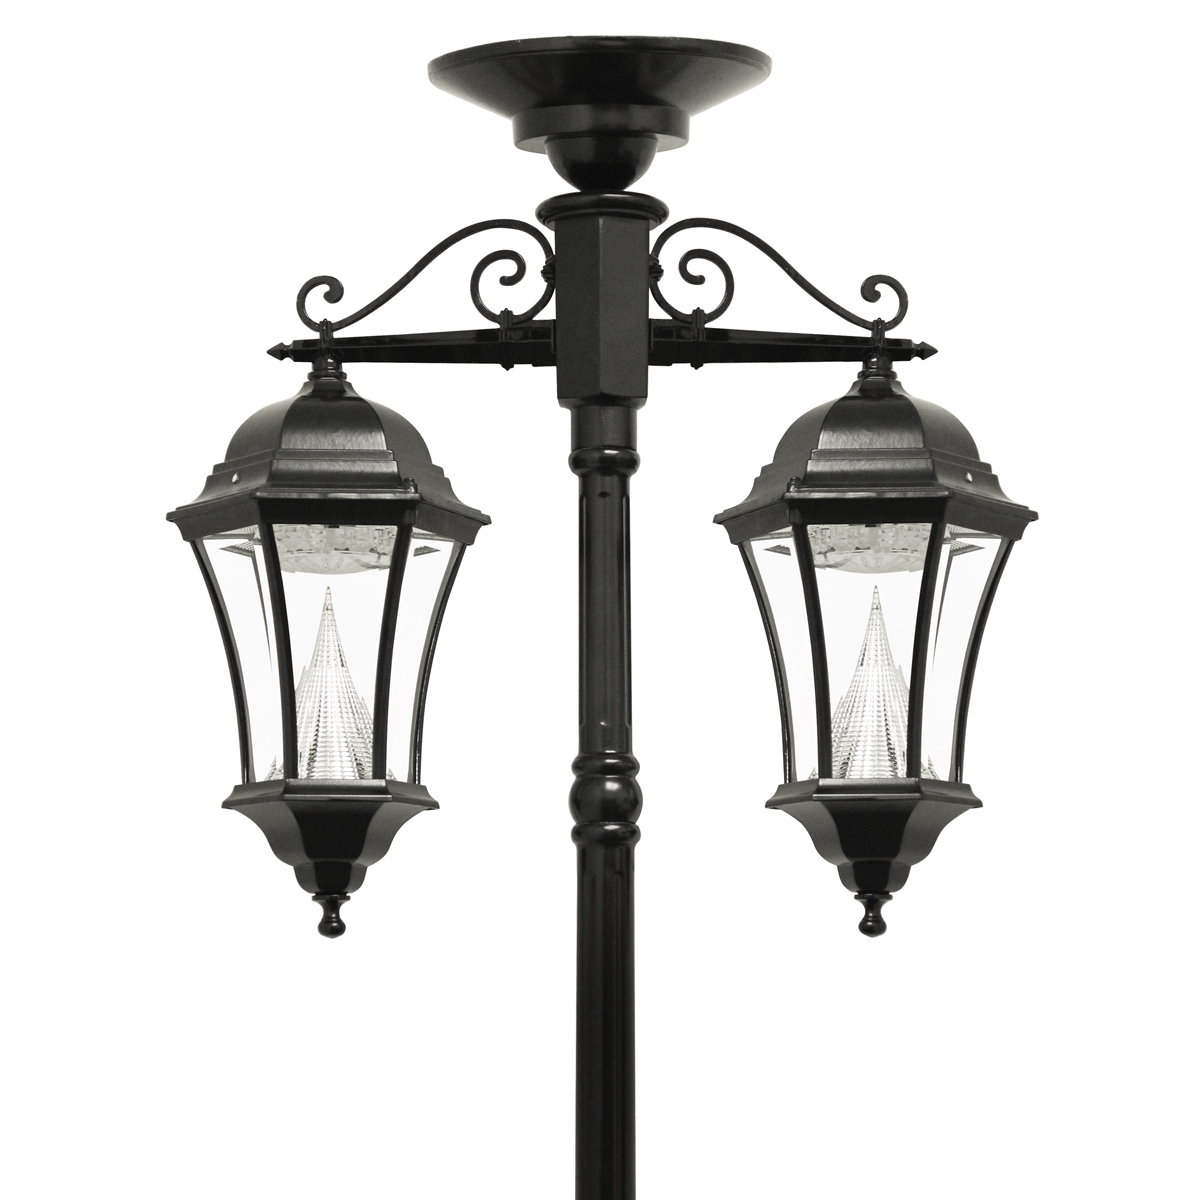 2019 Victorian Solar Lamp Series – Double Downward Hanging Lamp Post Gs Regarding Outdoor Hanging Post Lights (View 4 of 20)